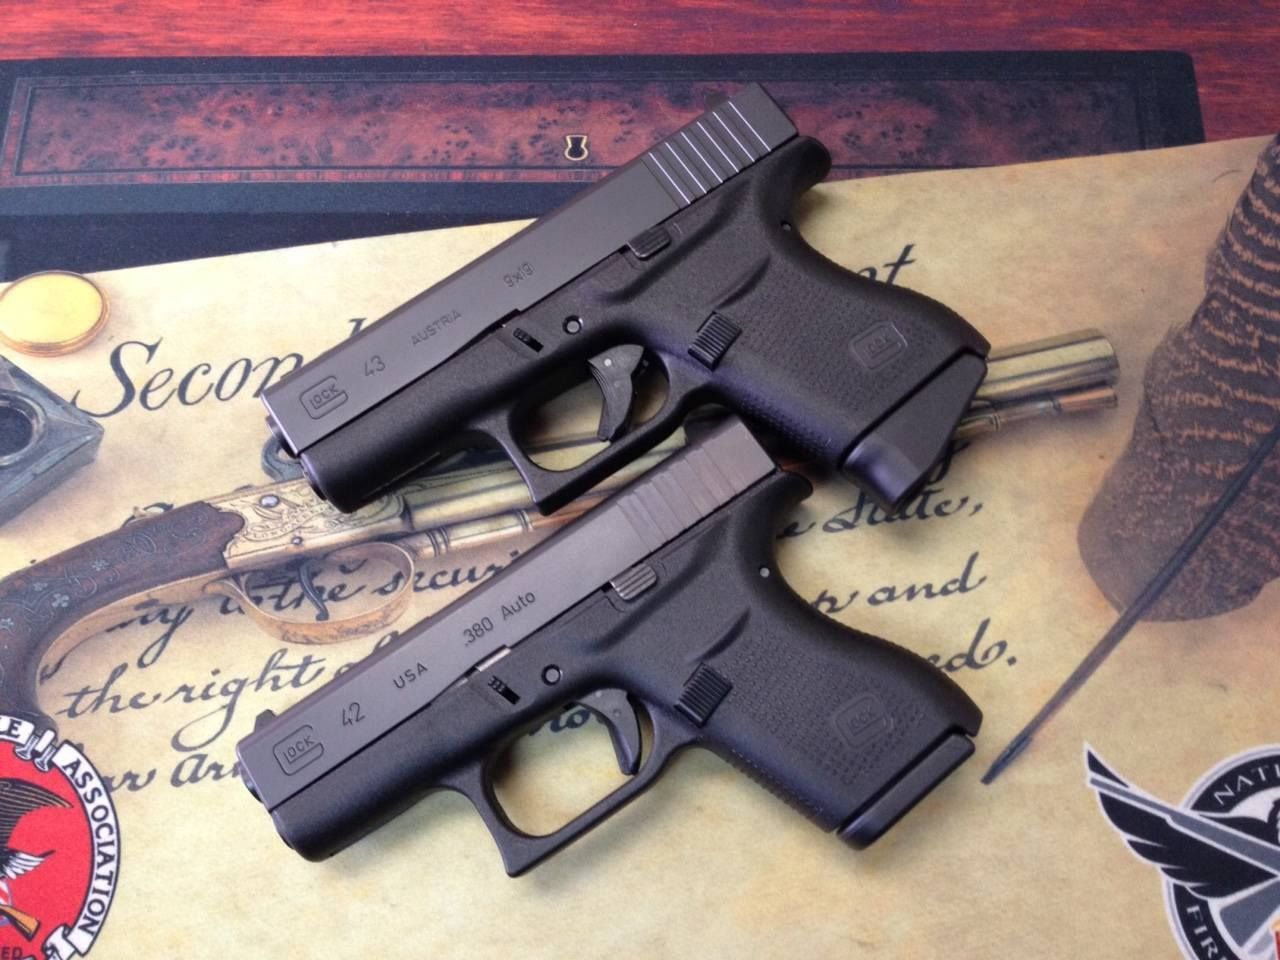 Minis The Glock 42 ( 380 ACP) and the Glock 43 (9x19mm) side